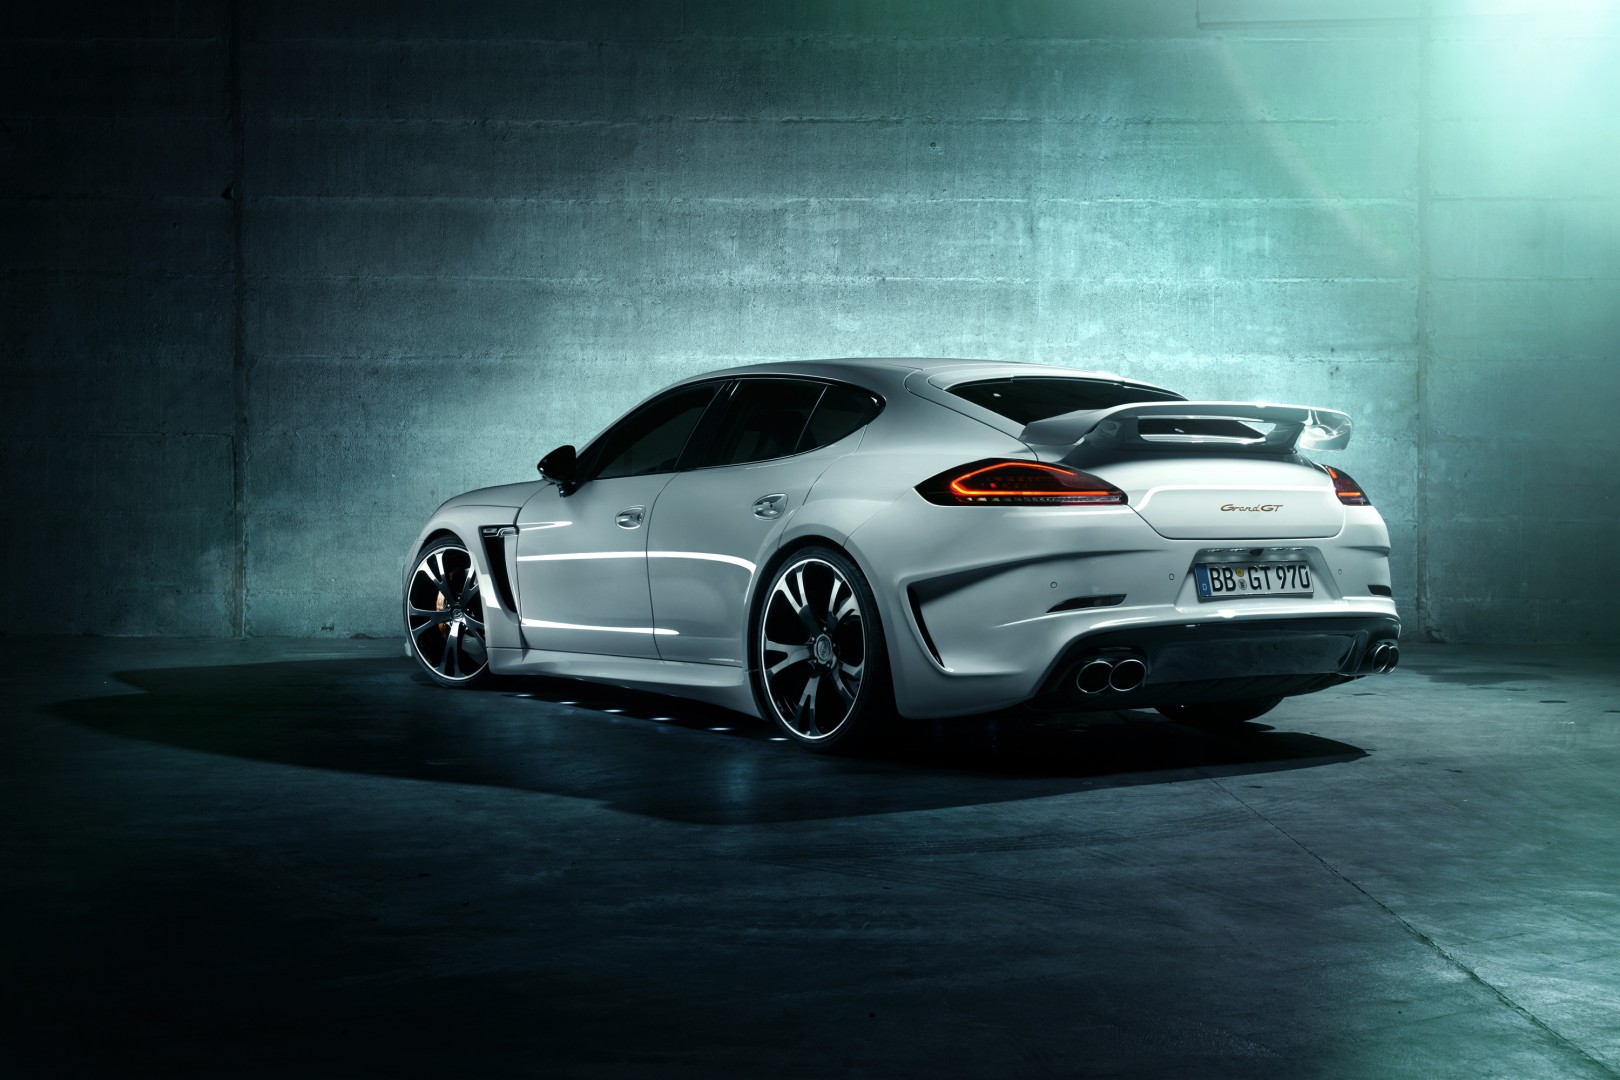 TECHART_GrandGT_for_Porsche_Panamera_Turbo_exterior4